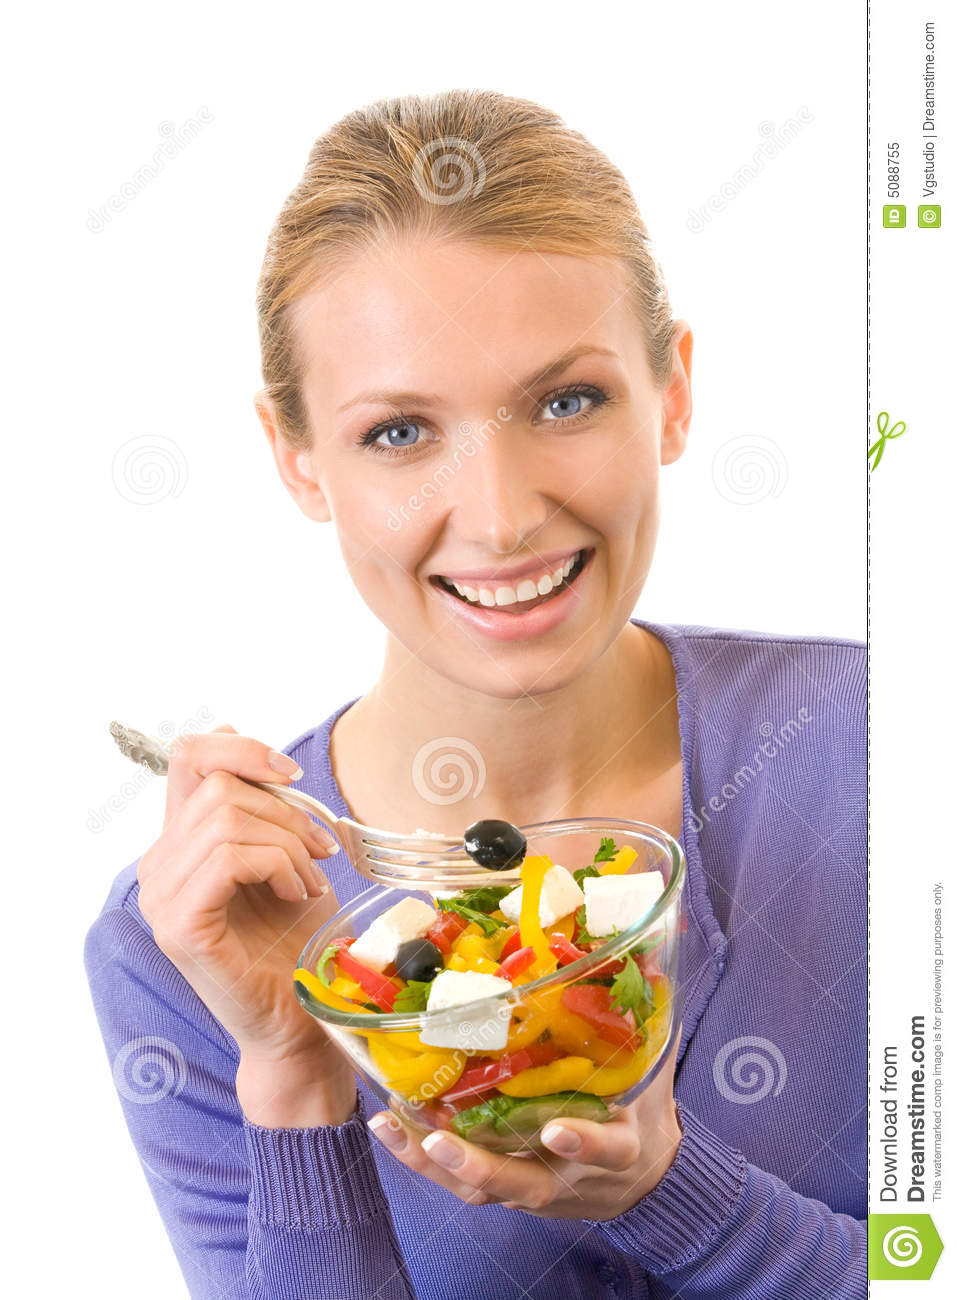 Woman eating salad, isolated